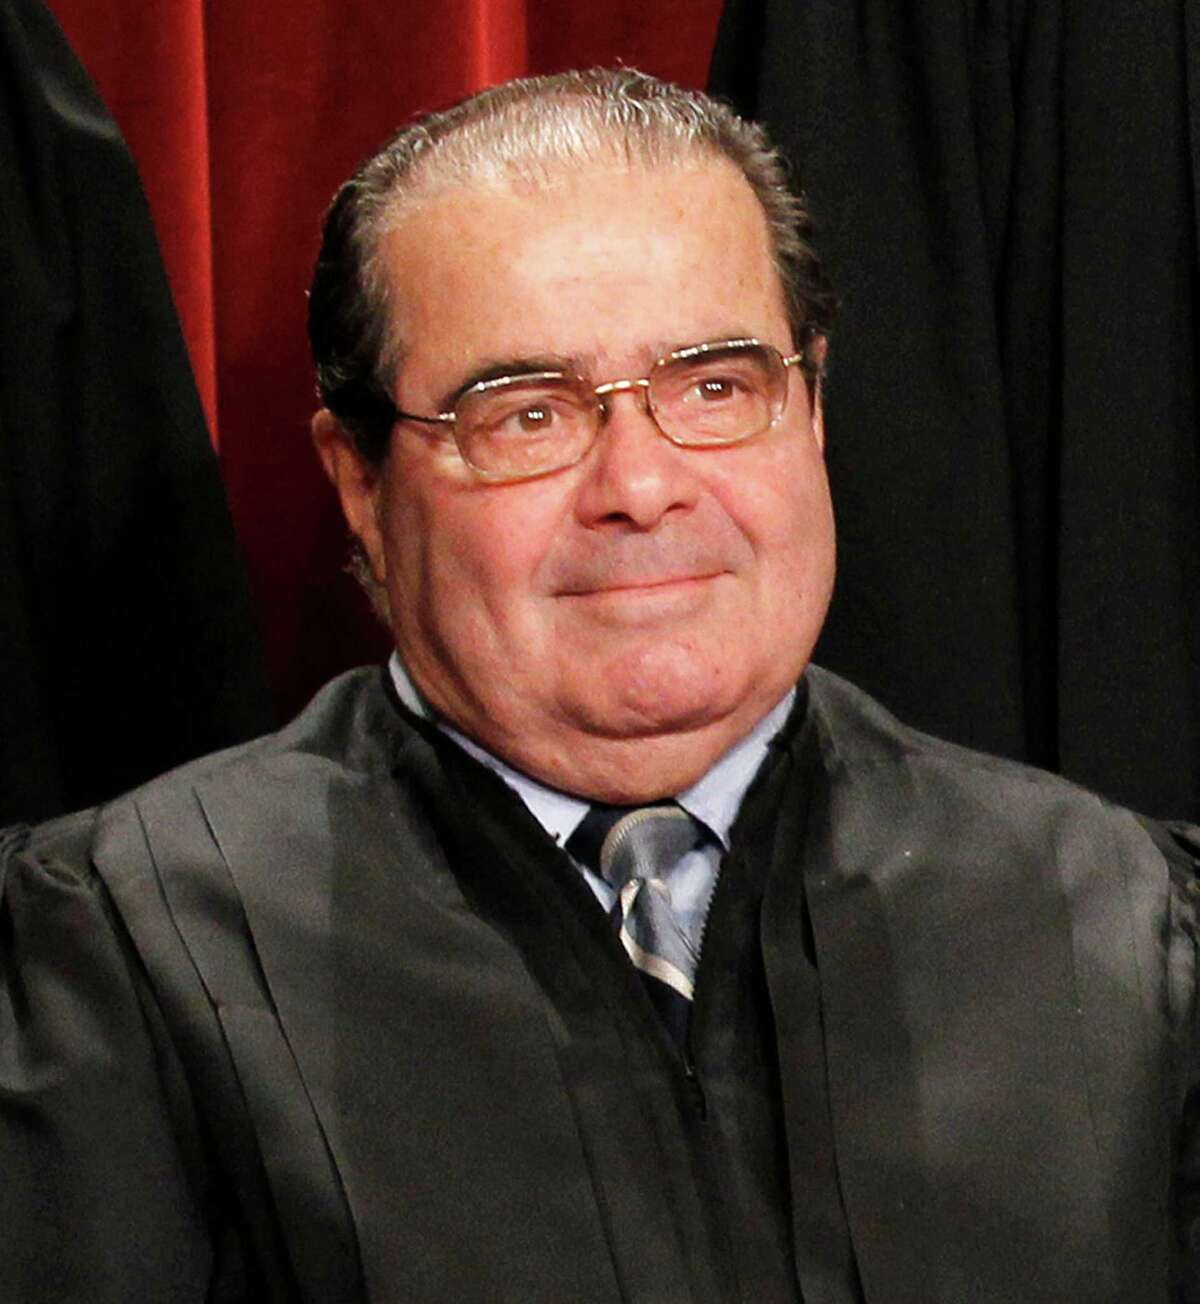 Justice Antonin Scalia poses for a group portrait of the Supreme Court in this file photo.